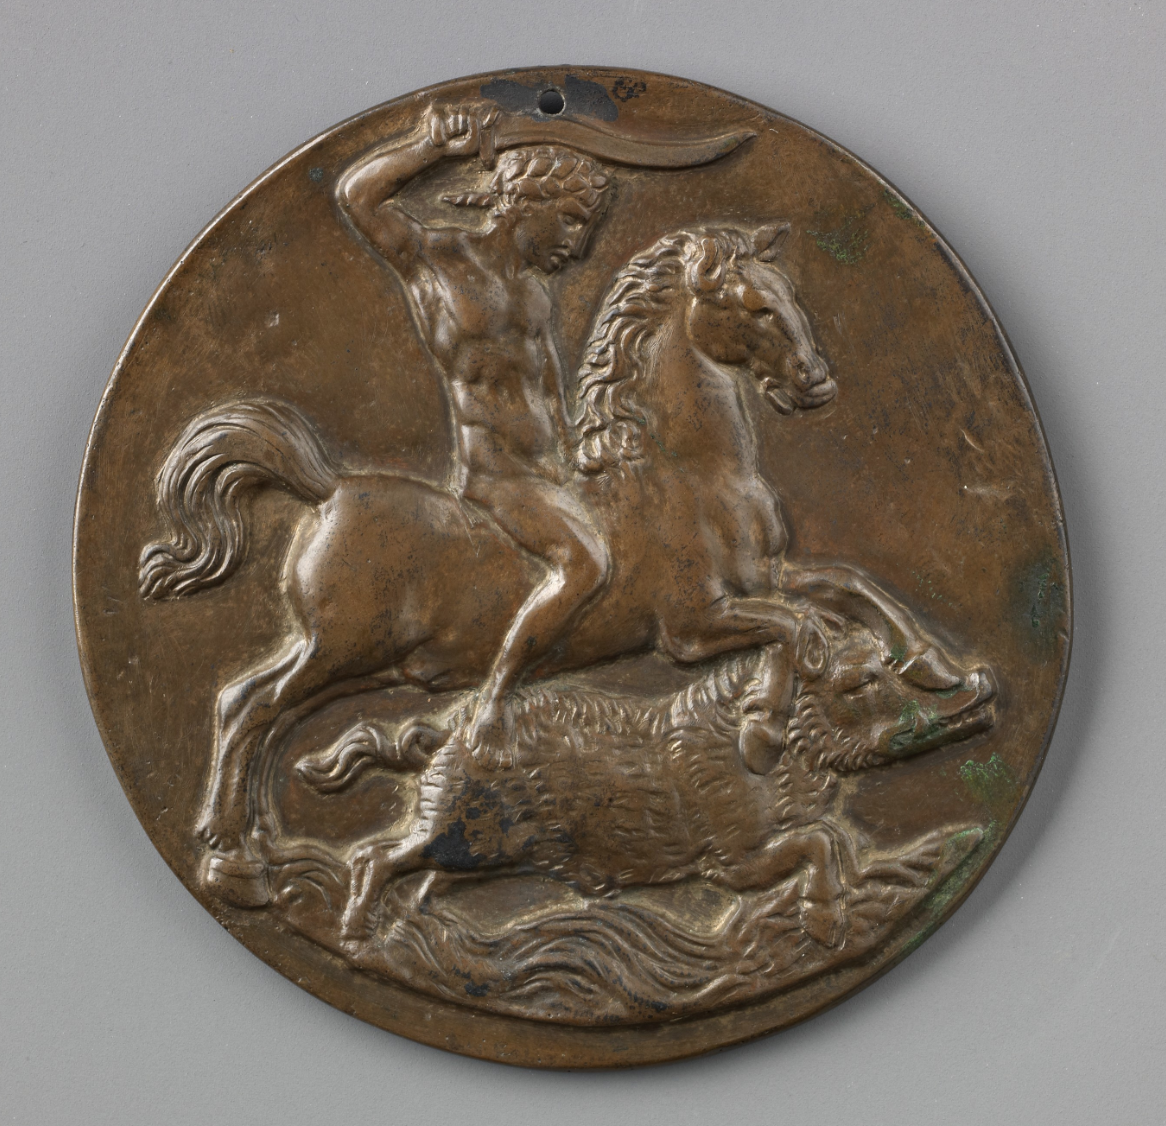 Plaquette depicting Meleager on horseback hunting the Calydonian Boar, 16th century, later cast, Pseudo-Melioli, Italy